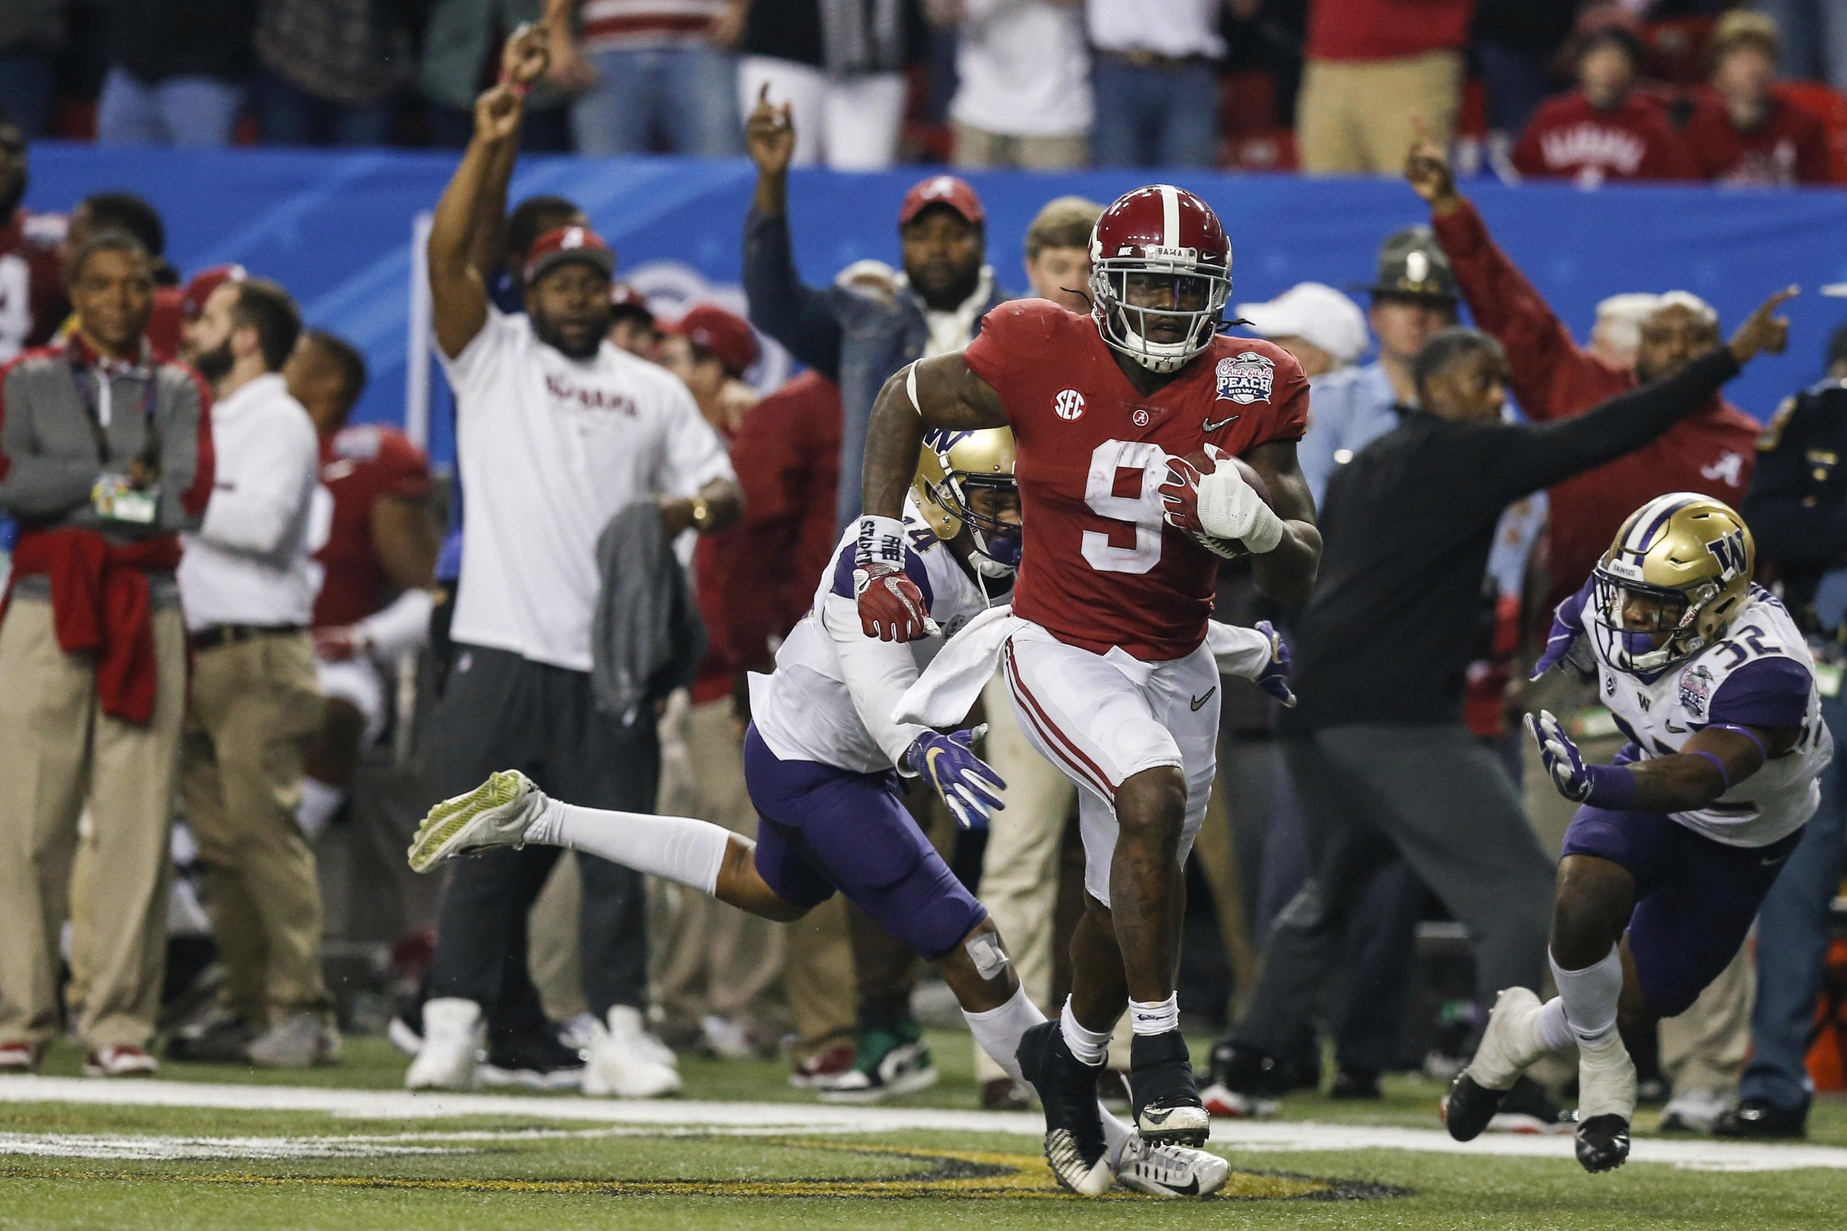 Dec 31, 2016; Atlanta, GA, USA; Alabama Crimson Tide running back Bo Scarbrough (9) runs the ball for a touchdown during the fourth quarter in the 2016 CFP Semifinal against the Washington Huskies at the Georgia Dome. Mandatory Credit: Jason Getz-USA TODAY Sports